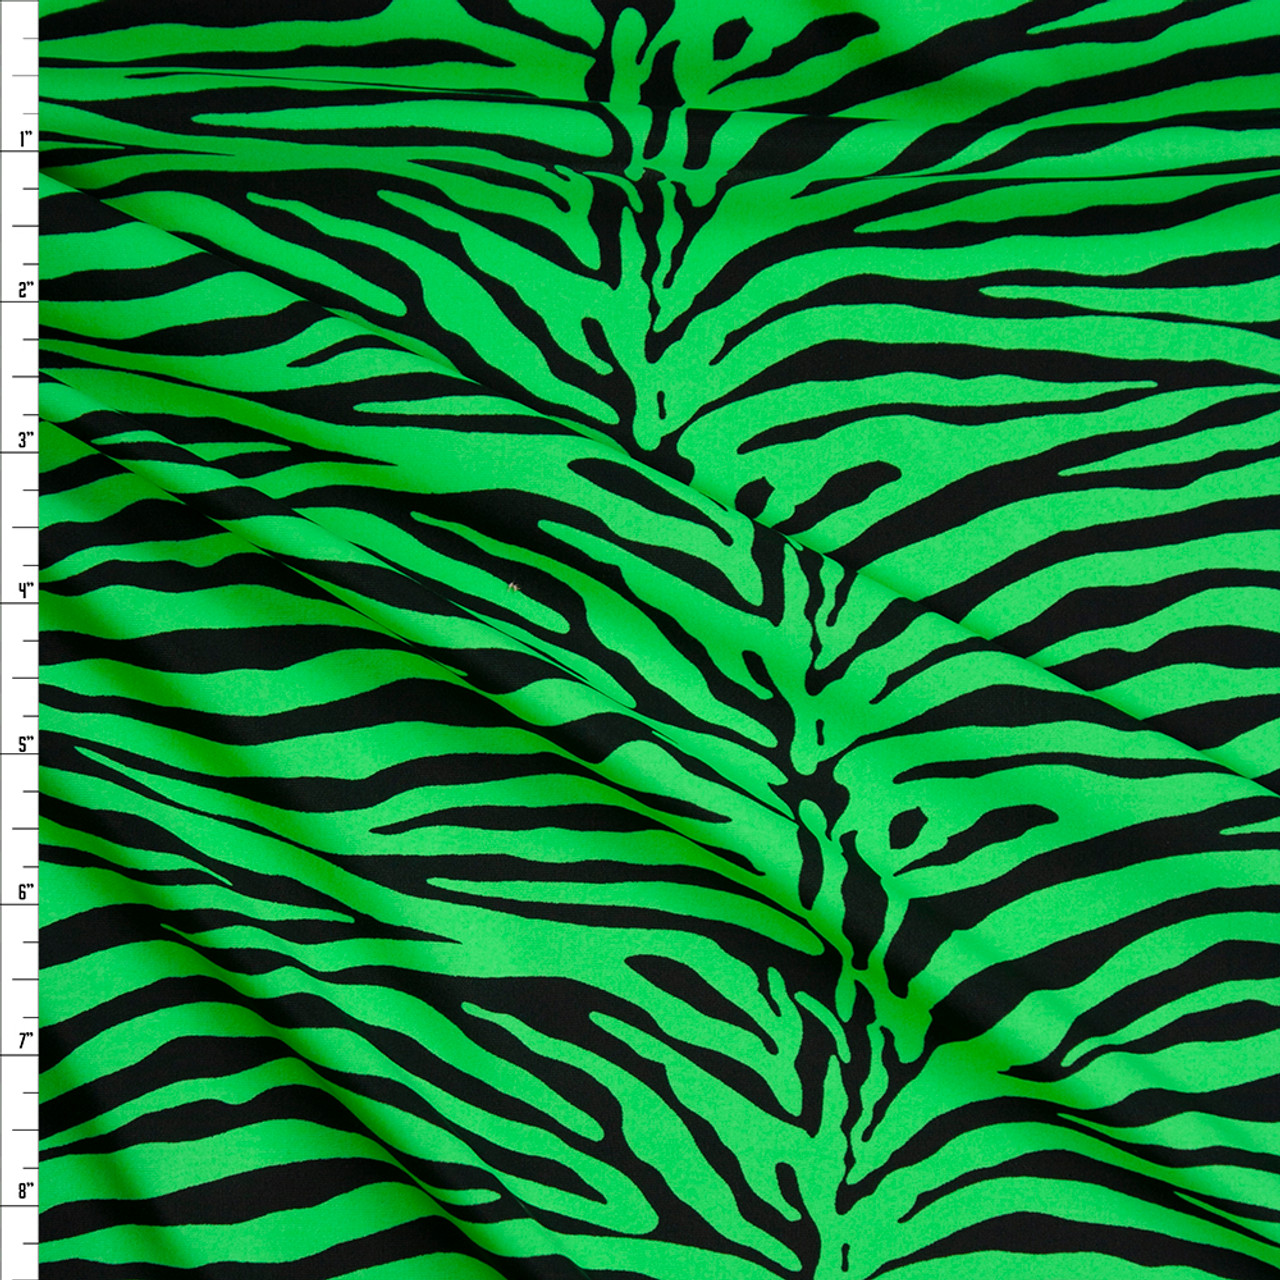 Cali Fabrics Neon Green And Black Tiger Print Nylon Spandex Fabric